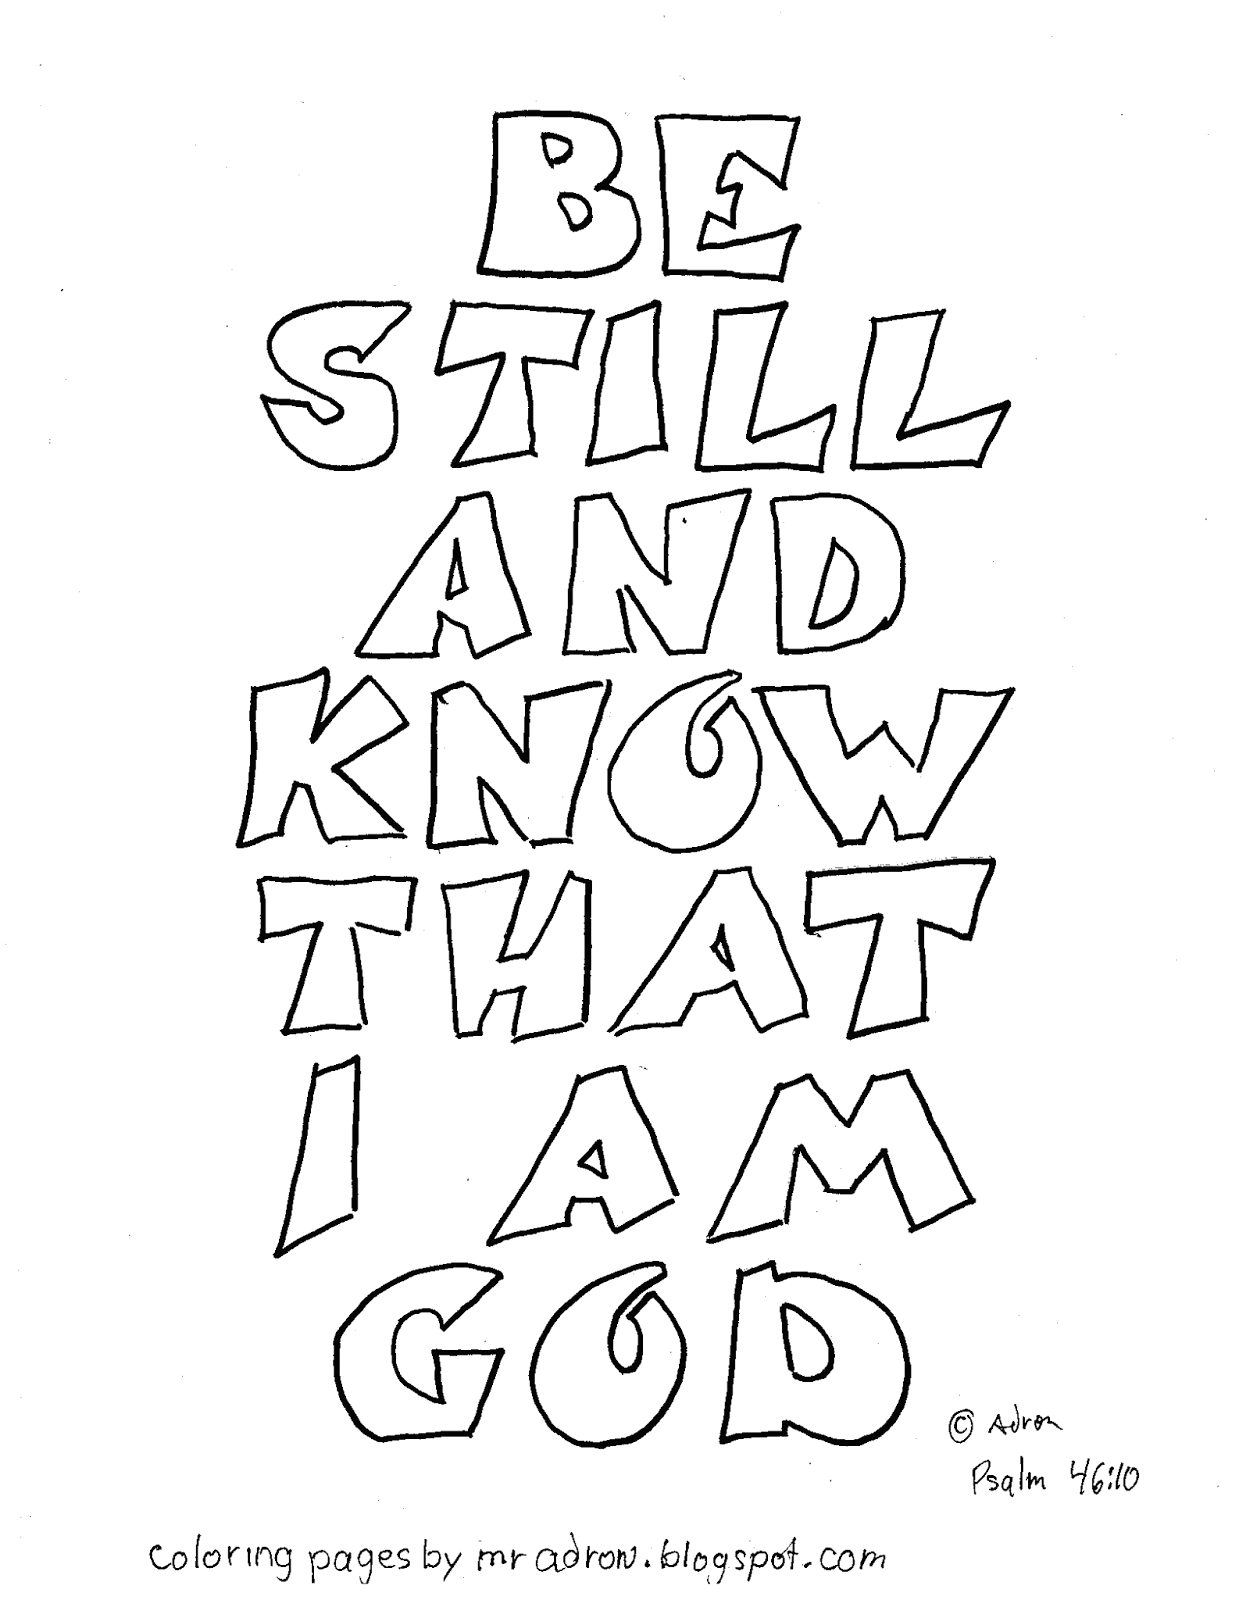 psalm 4610 coloring page